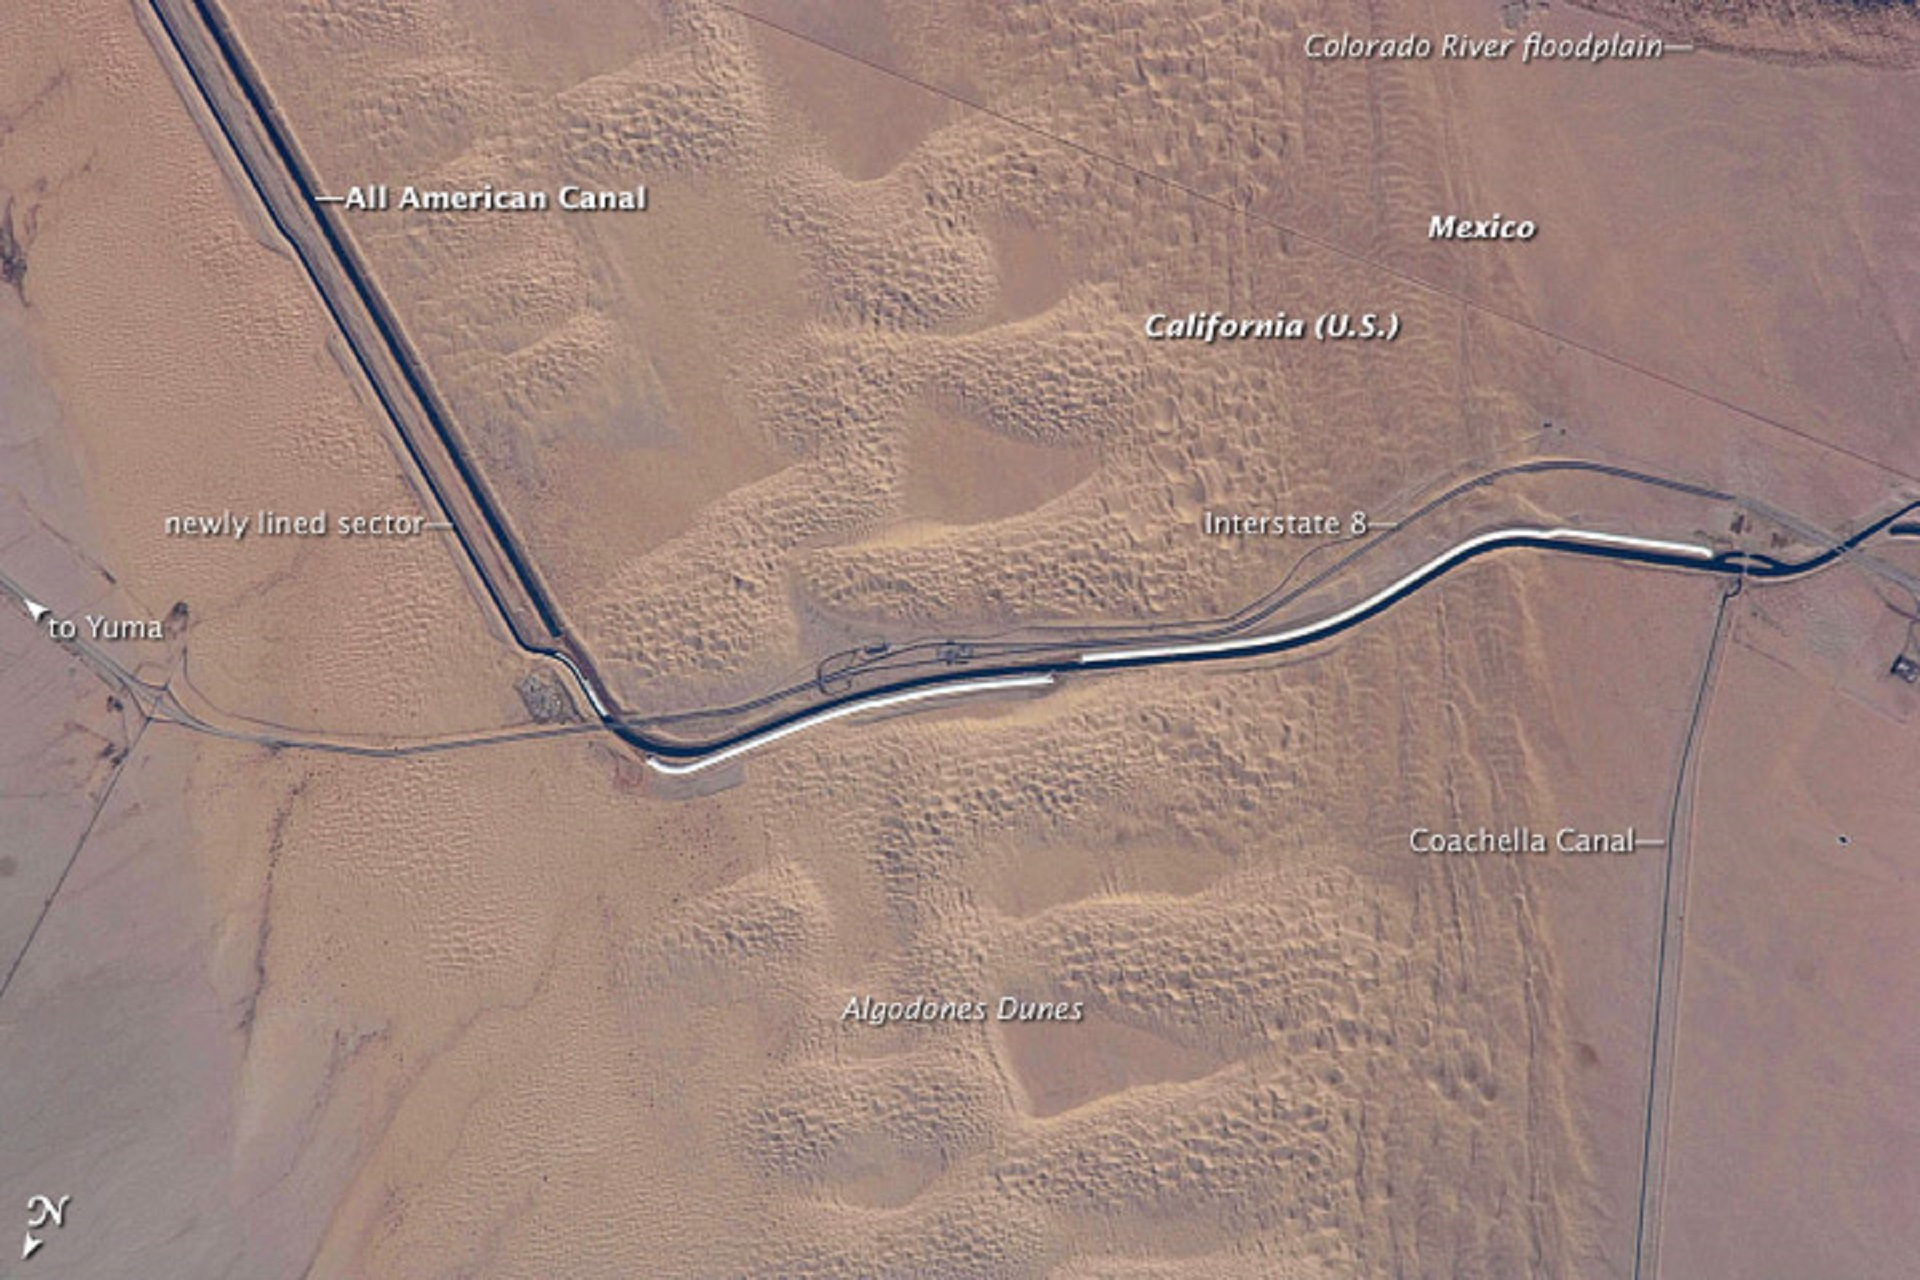 Nasa Image Showing About 10 Miles Of The All American C As It Wends Its